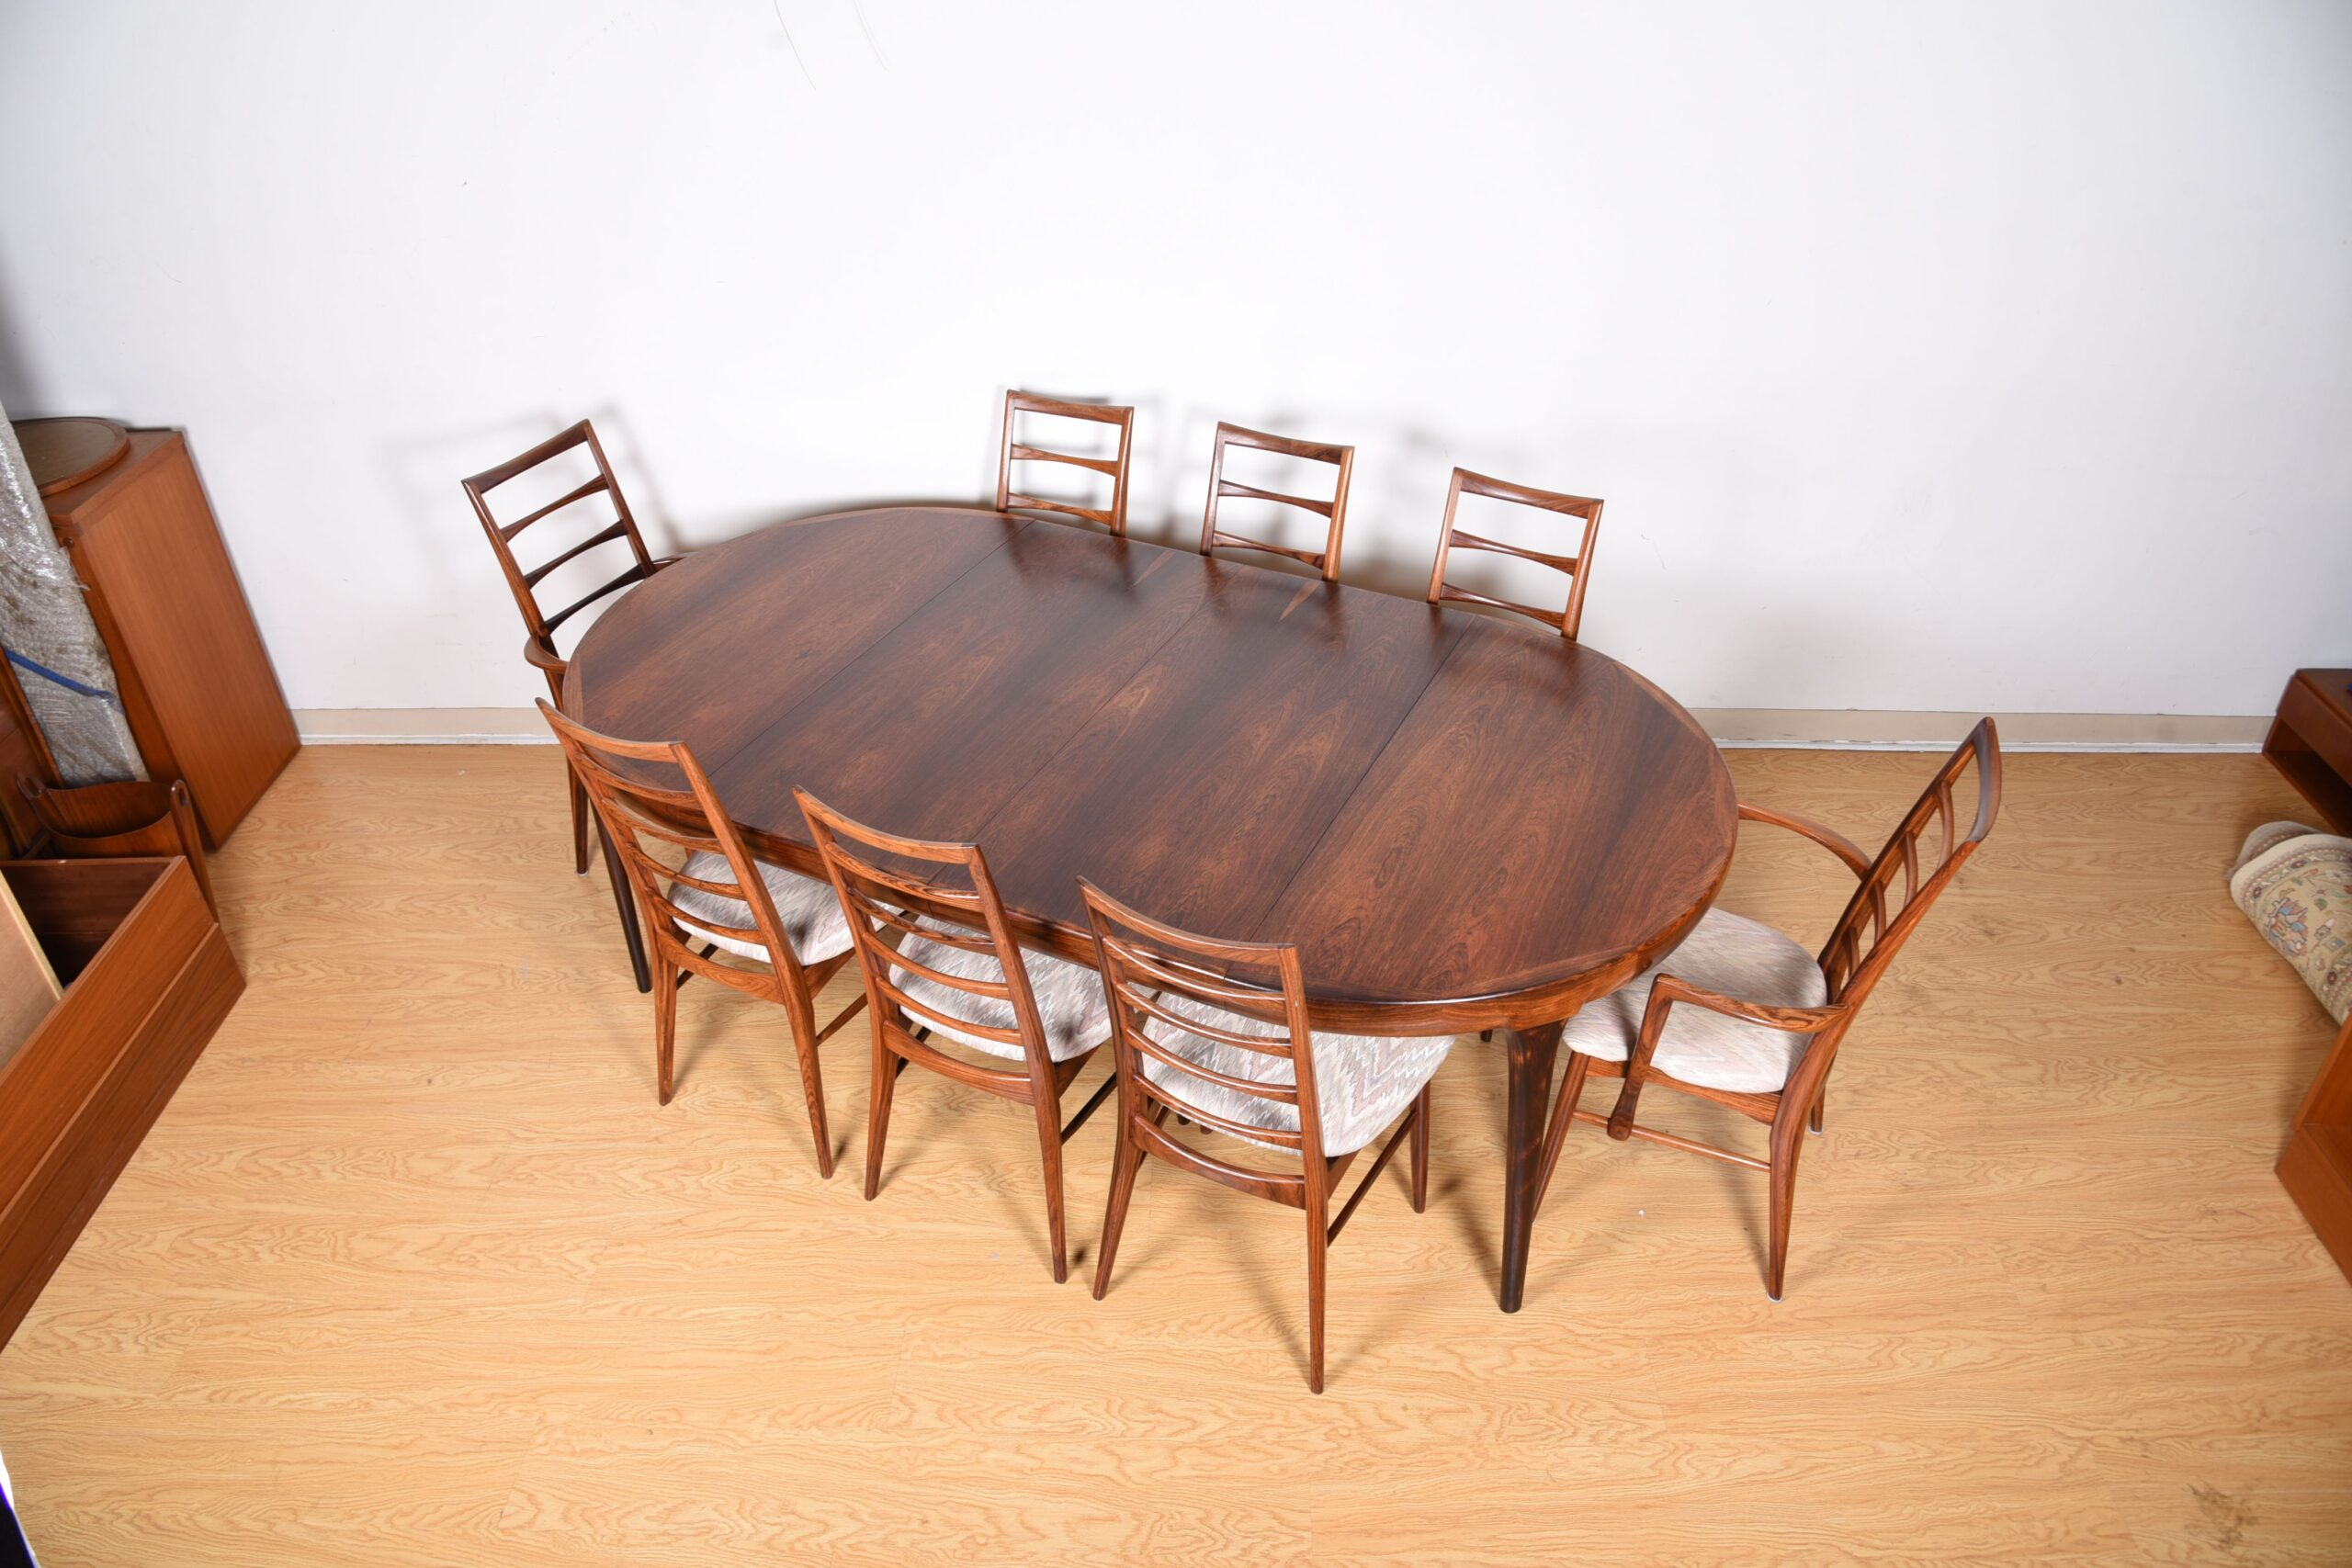 Ib Kofod Larsen Round to Oval Expanding Dining Table in Rosewood